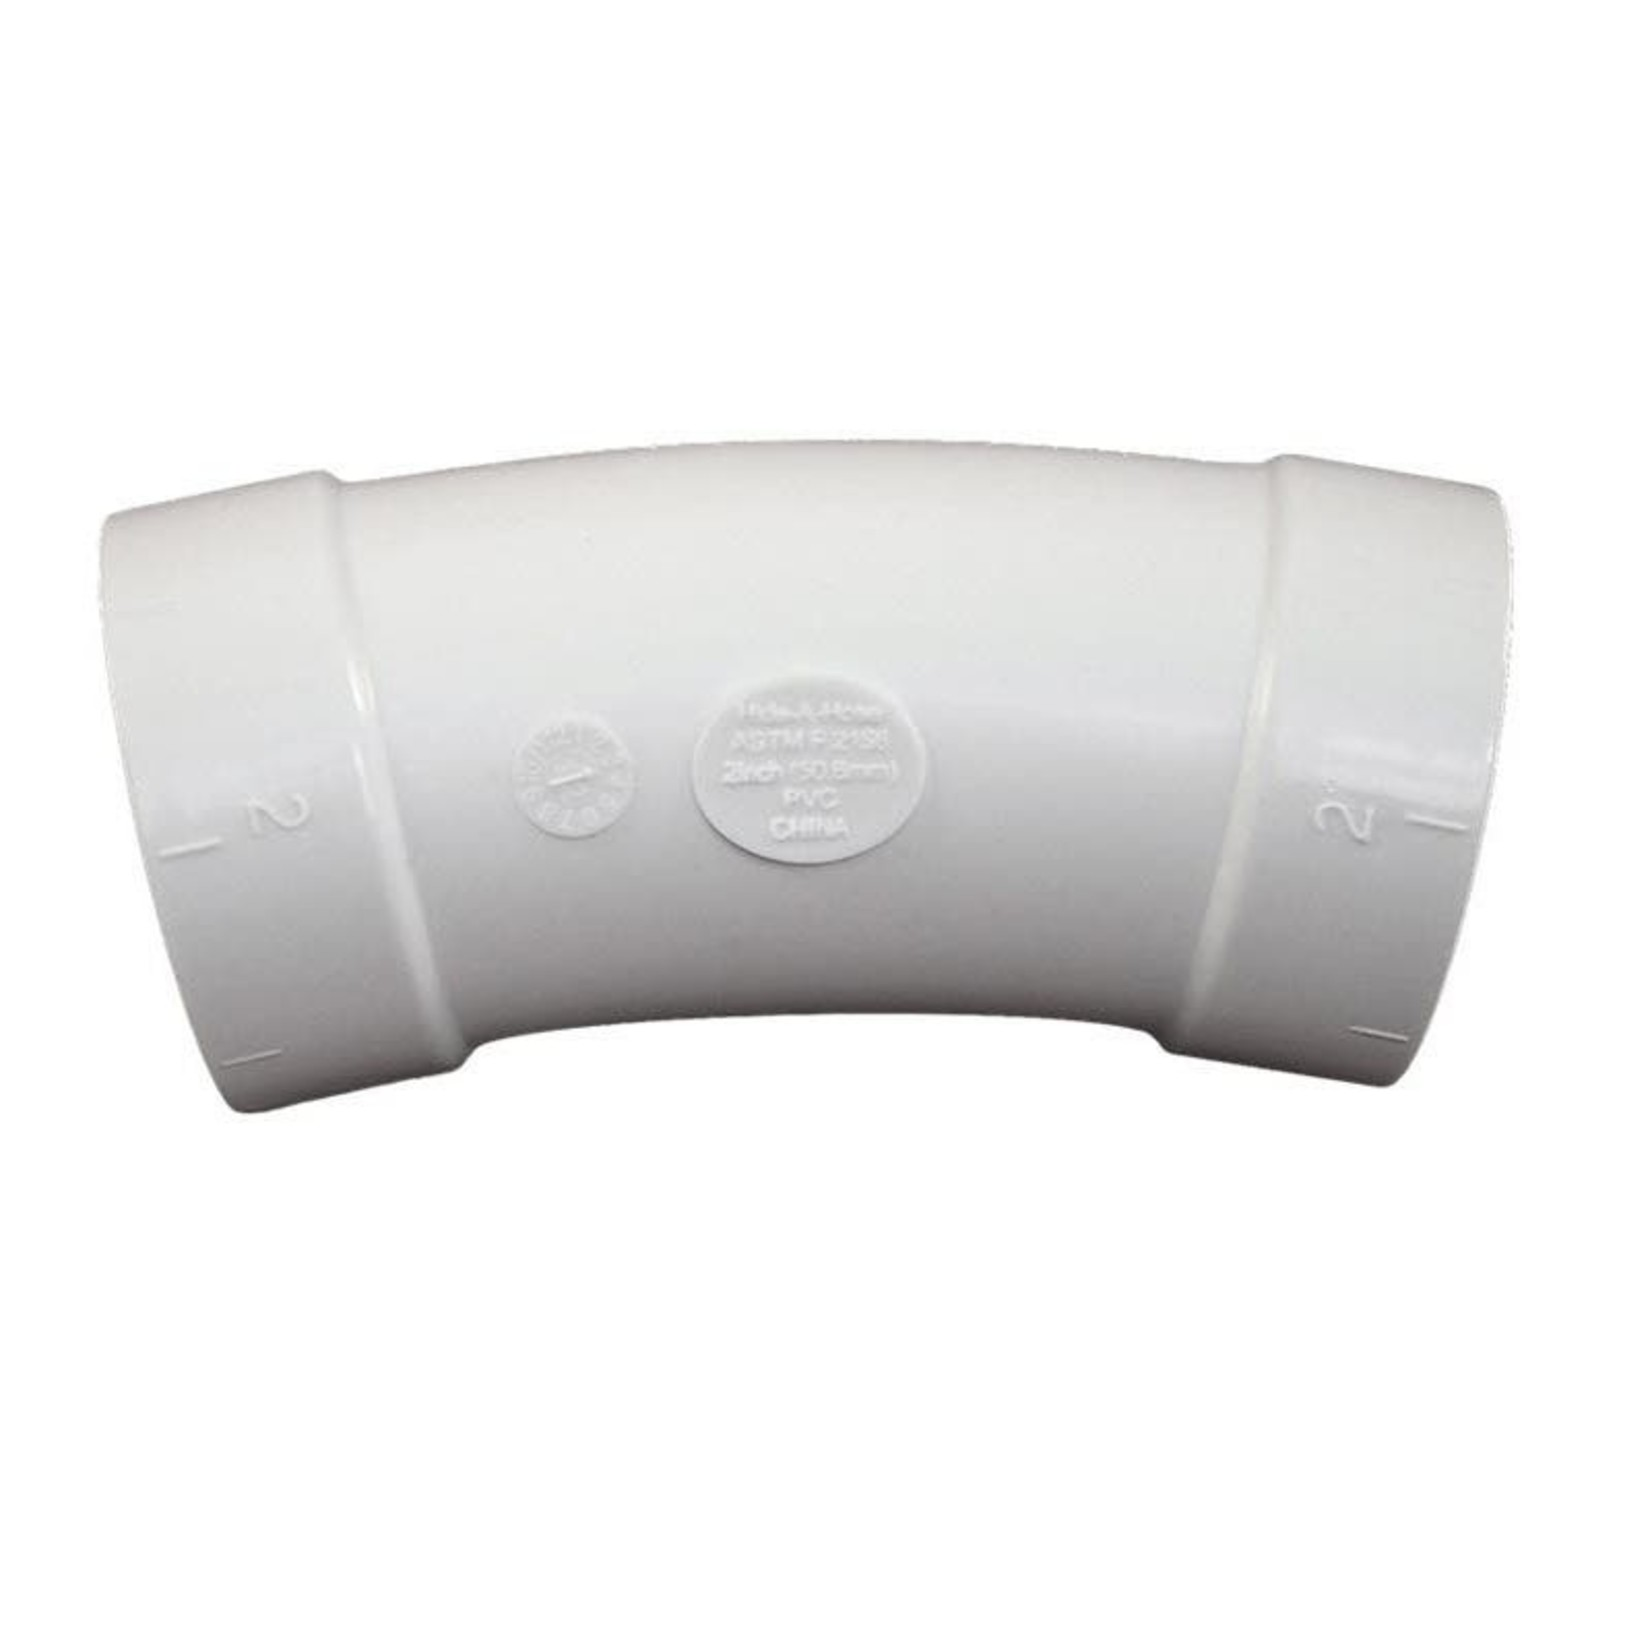 Hide A Hose Central Vacuum Large 22.5 Elbow Fitting for Hose Retraction